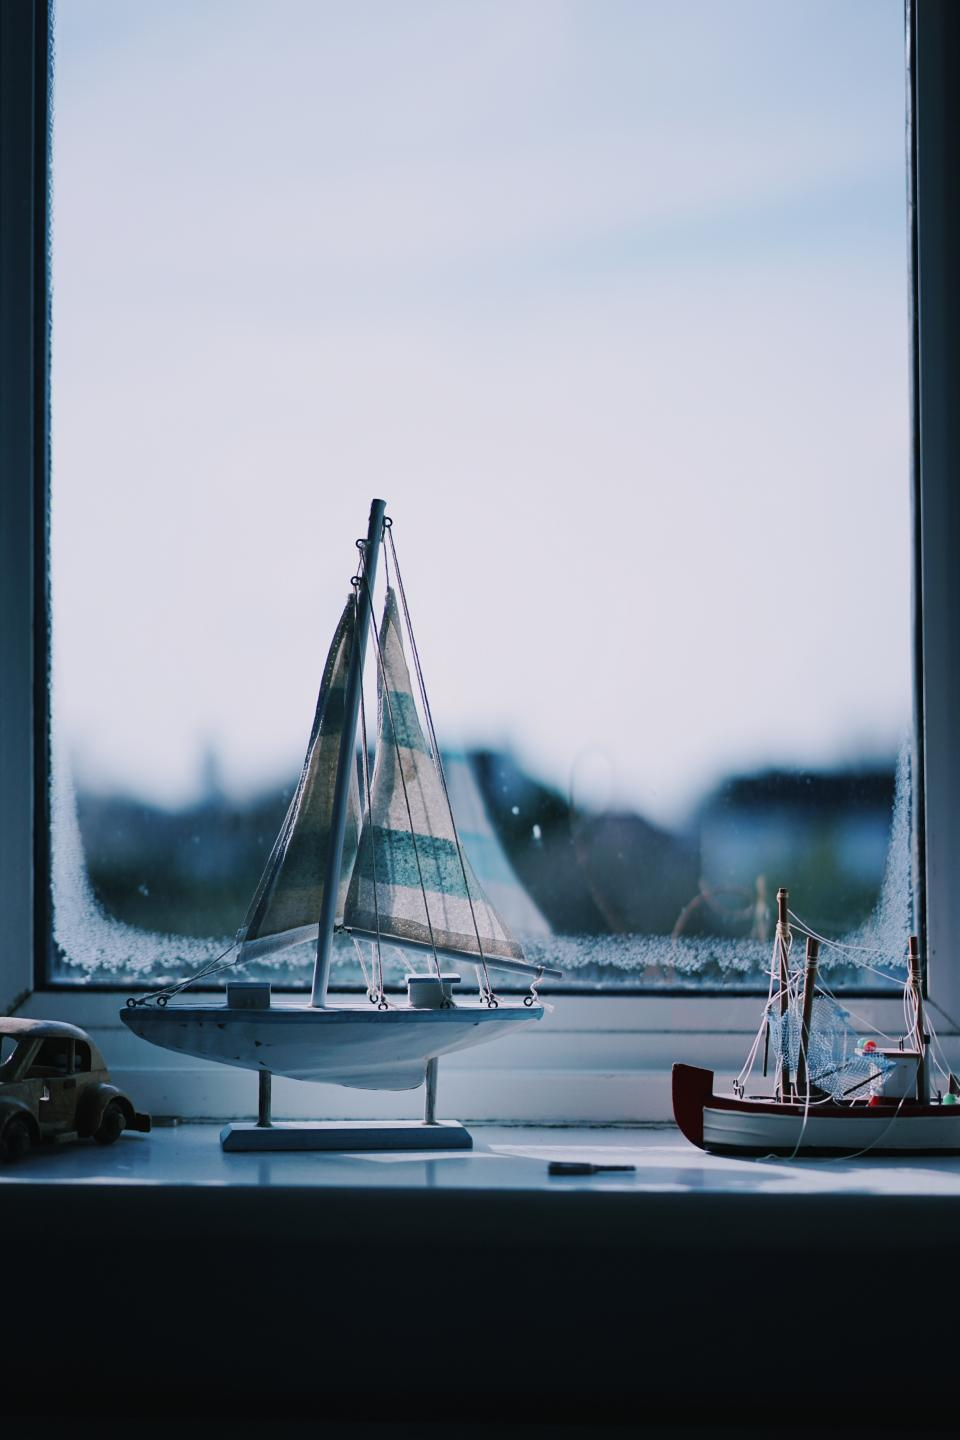 still items things miniature scale model ship sail display collection window pane view bokeh